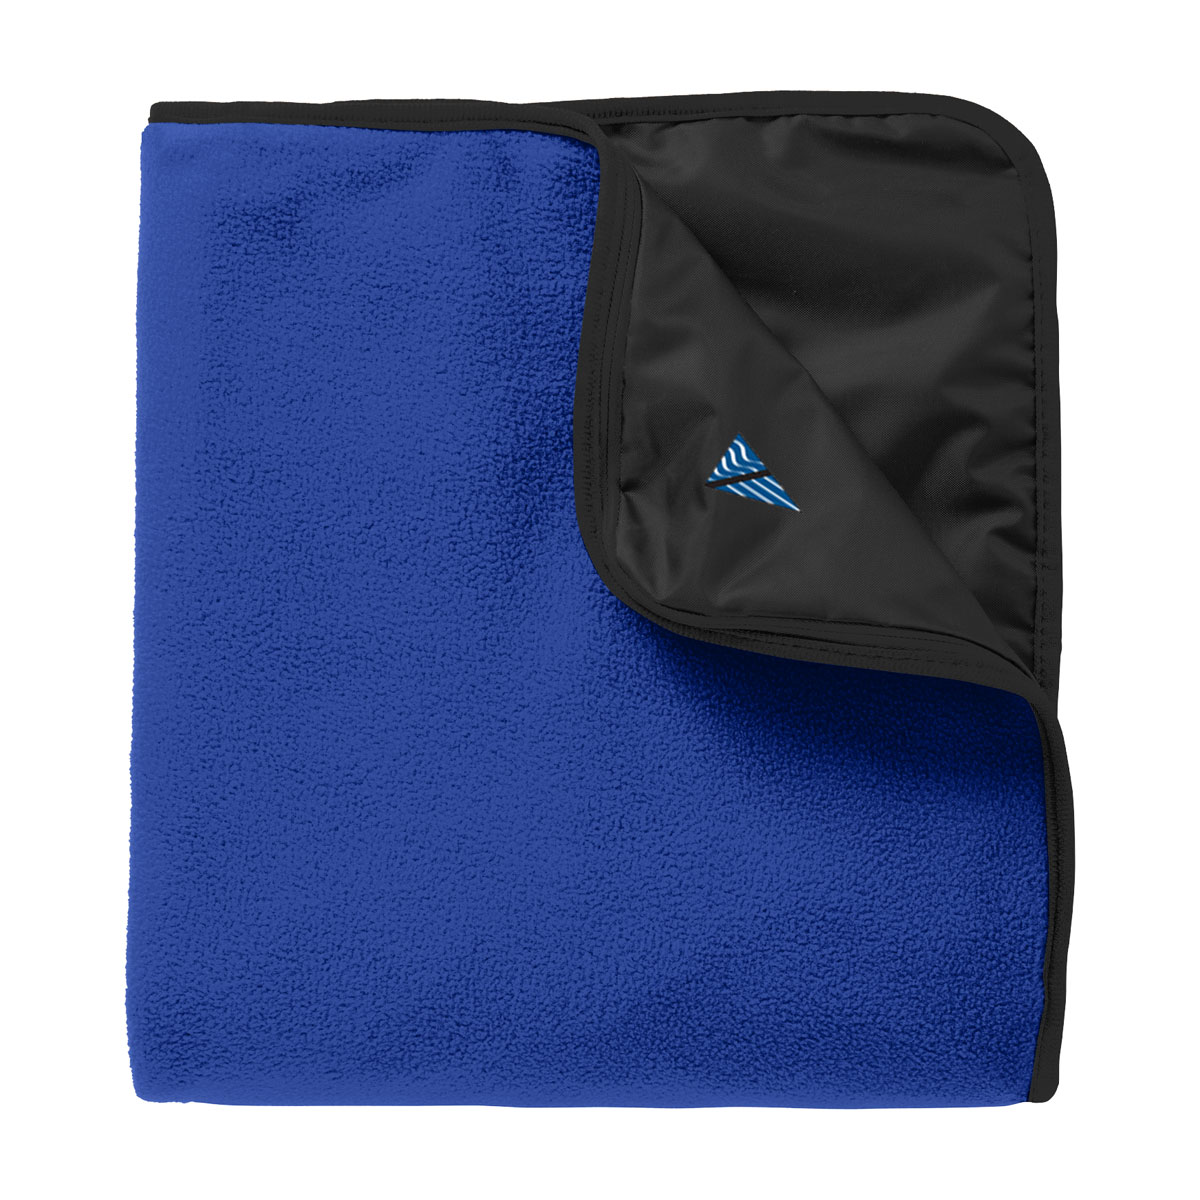 Breakwater Yacht Club- Shelled Fleece Blanket